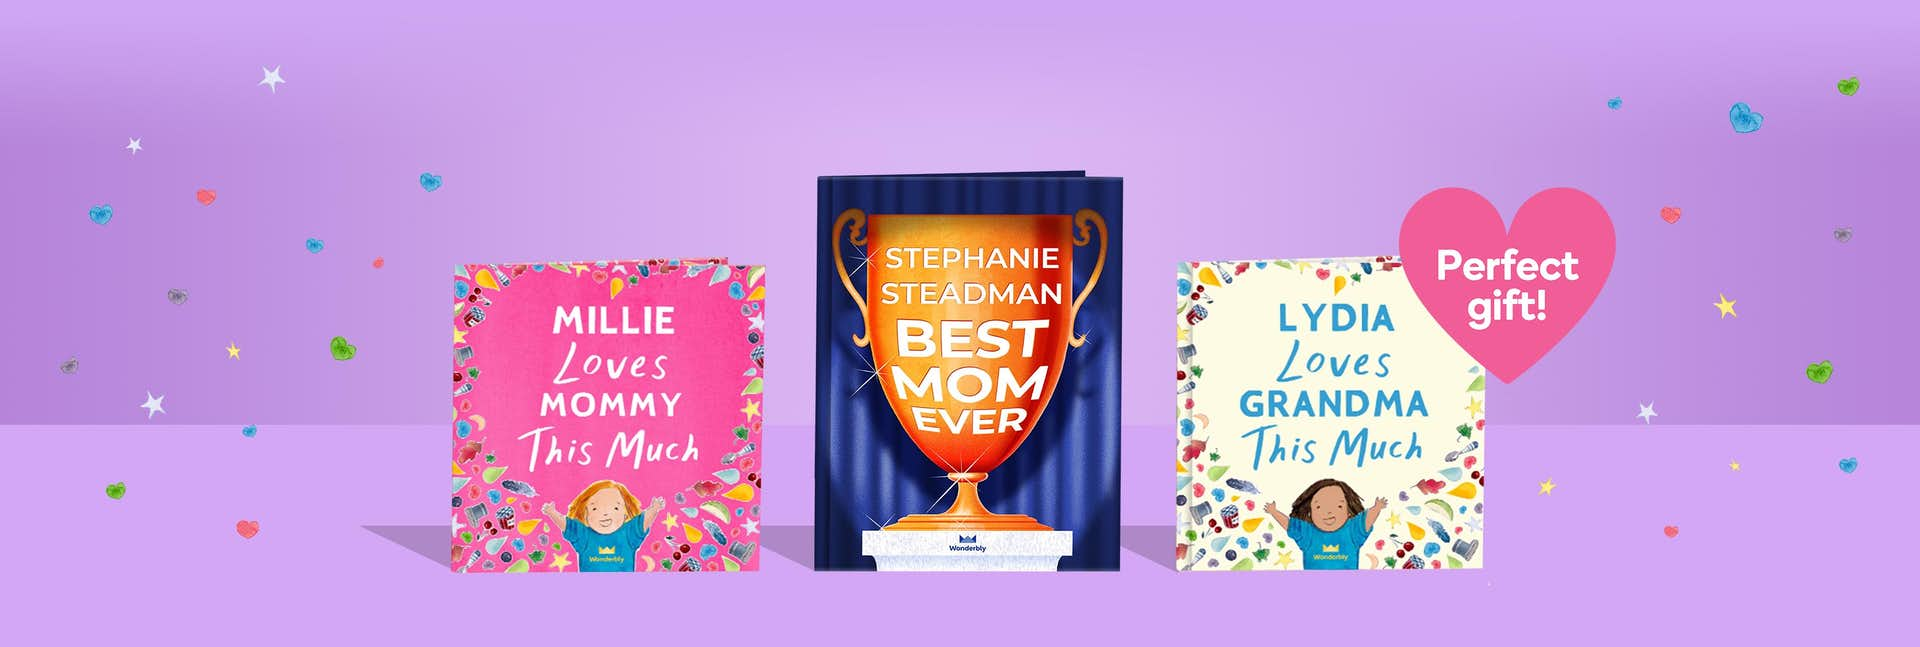 Personalized Mother's Day gifts   Books